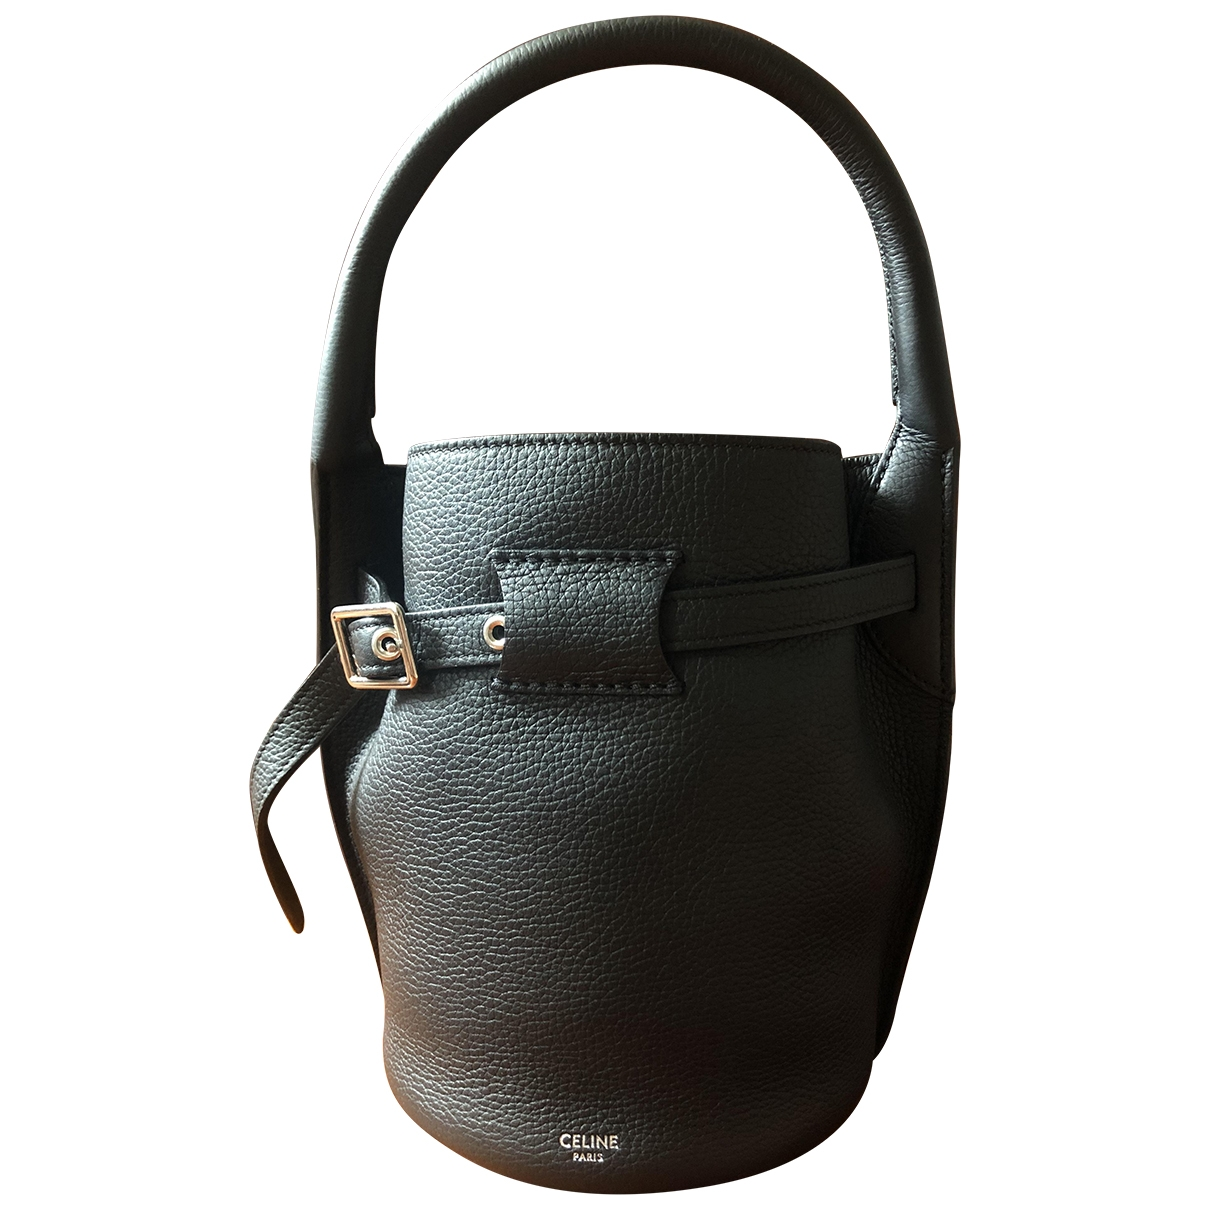 Celine Big Bag Black Leather handbag for Women \N